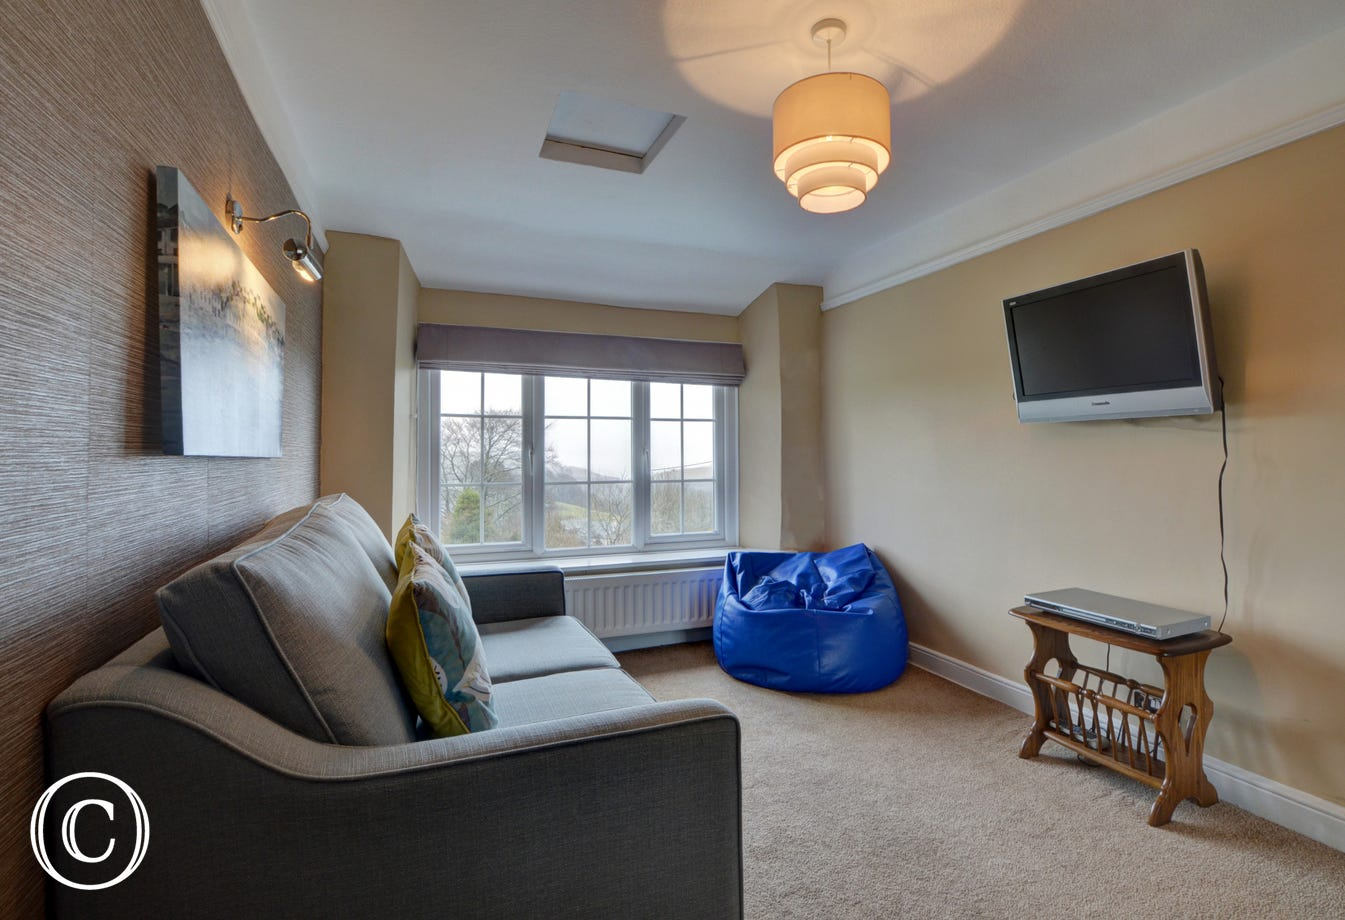 A Snug on the first floor is ideal for quiet relaxation or as a den for the younger generation